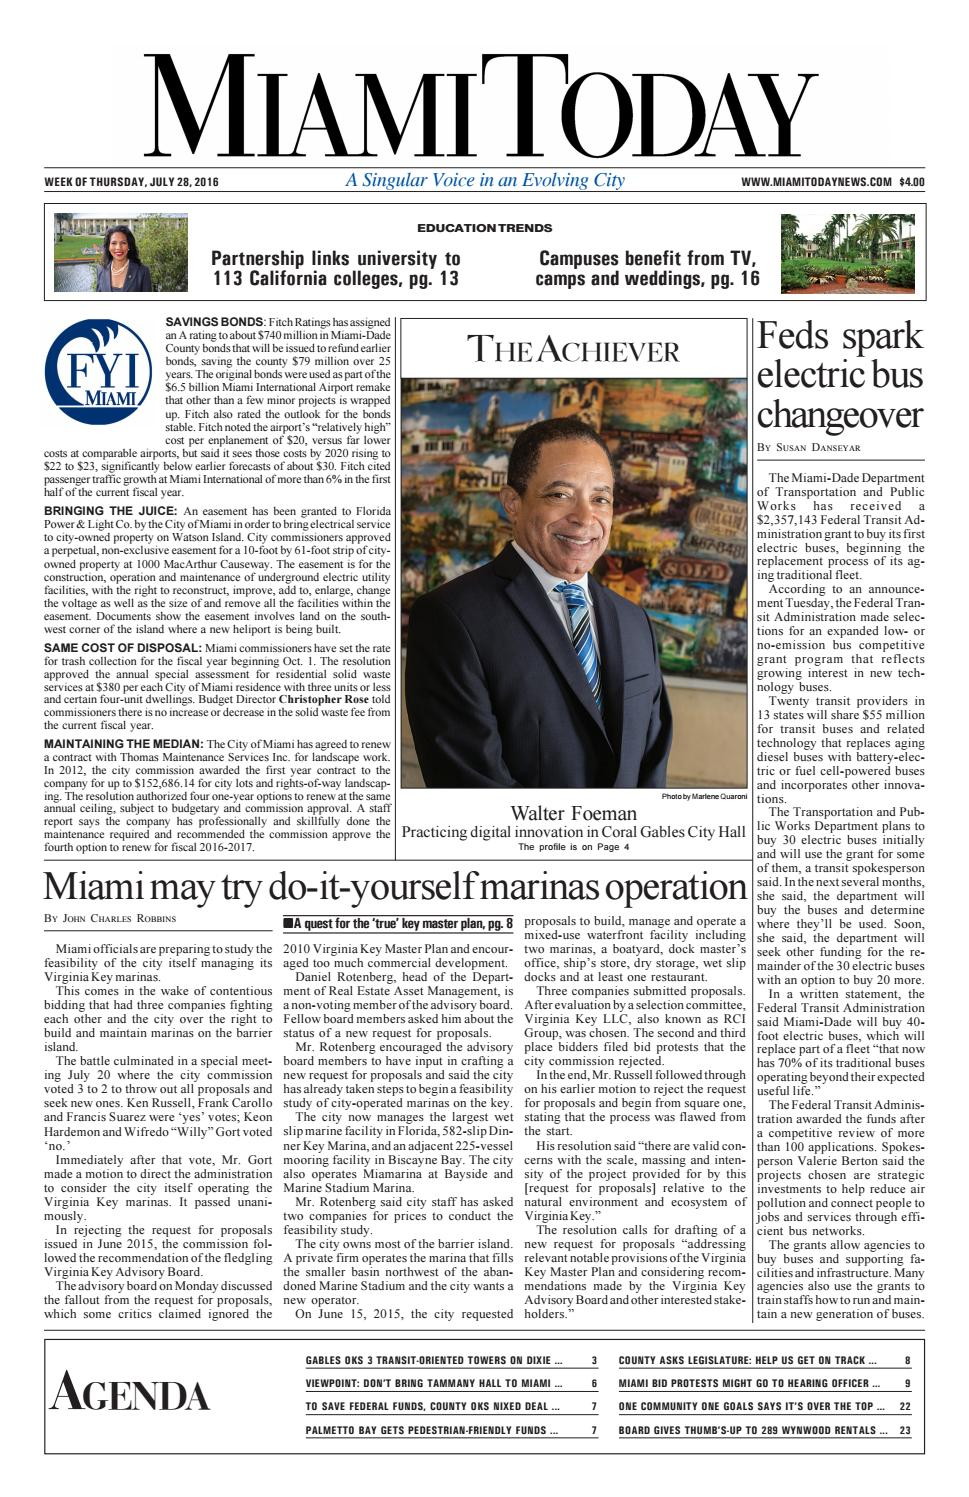 Miami Today: Week of Thursday, July 28, 2016 by Miami Today